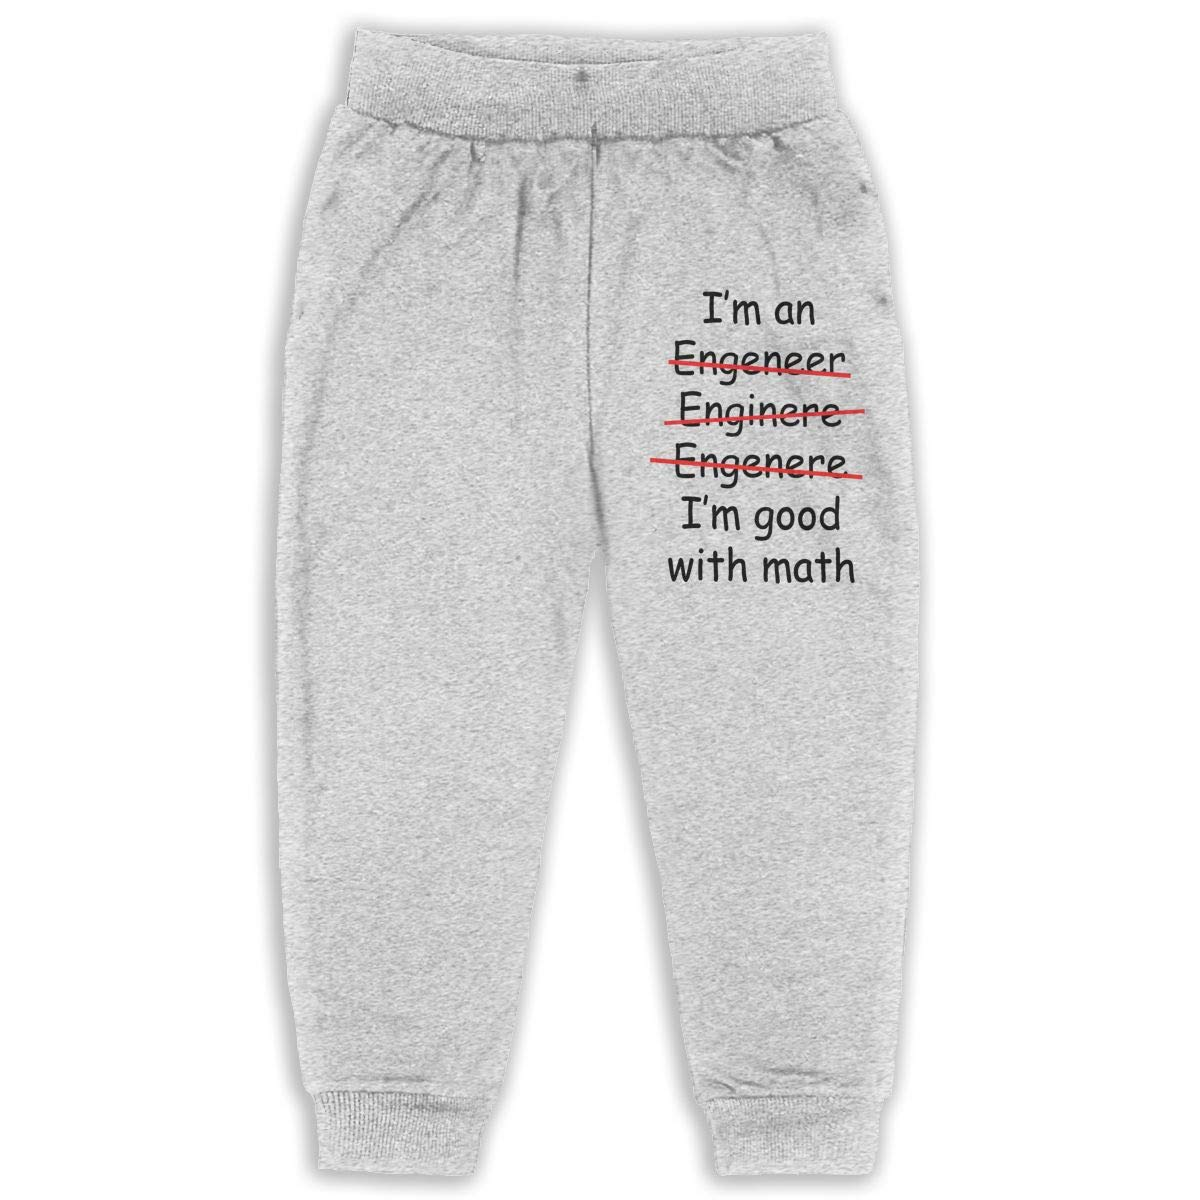 Im an Engineer Im Good at Math Sweatpants for Boys /& Girls Fleece Active Joggers Elastic Pants